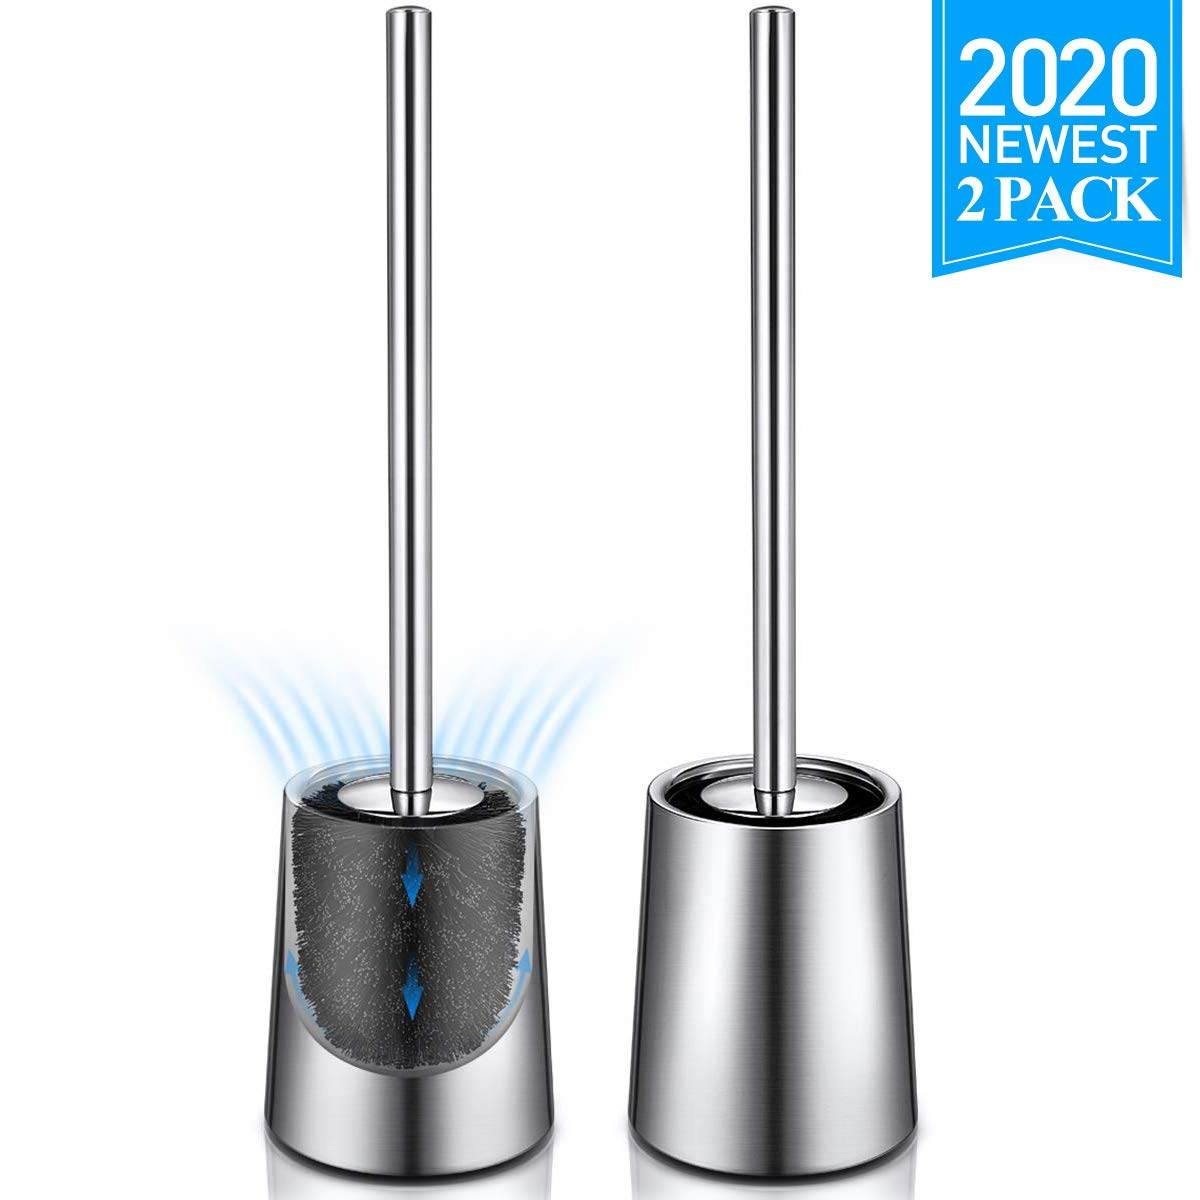 Homemaxs Toilet Brush and Holder, Upgraded 304 Stainless Steel Toilet Bowl Brush Rust-Resistant with Small Baffle More Ventilation,2 Pack Toilet Brush Clean Set with Long Handle(Brushed Surface)